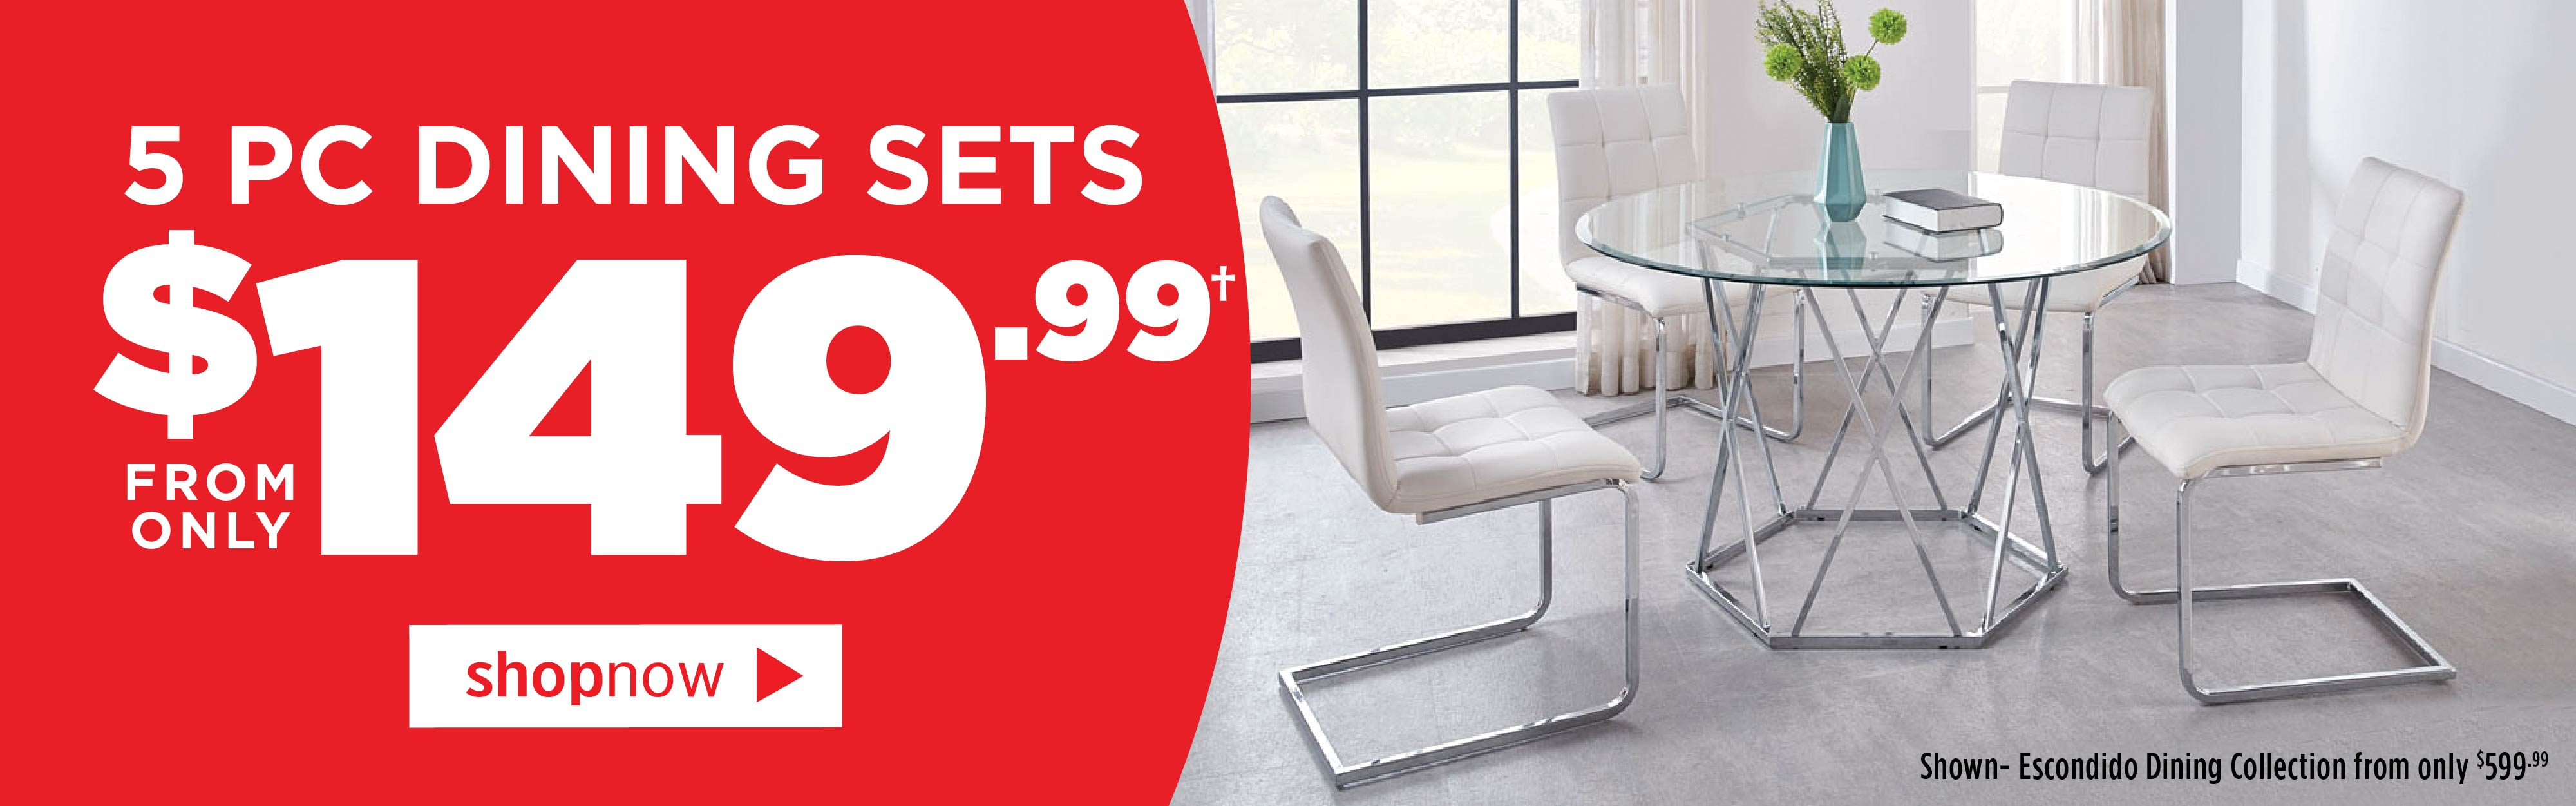 5-pc. Dining Sets from only $149.99